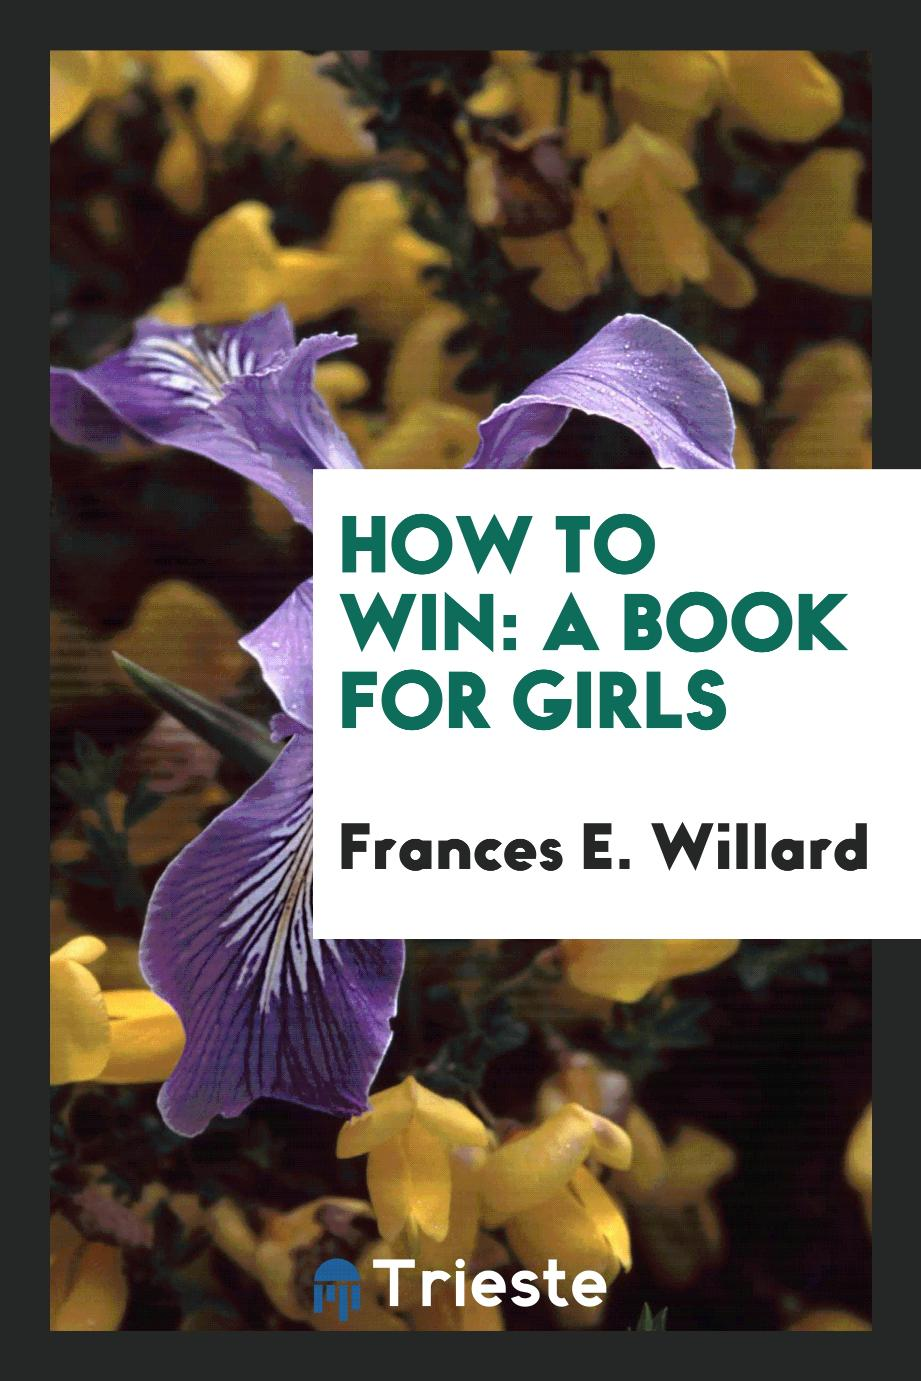 How to Win: A Book for Girls